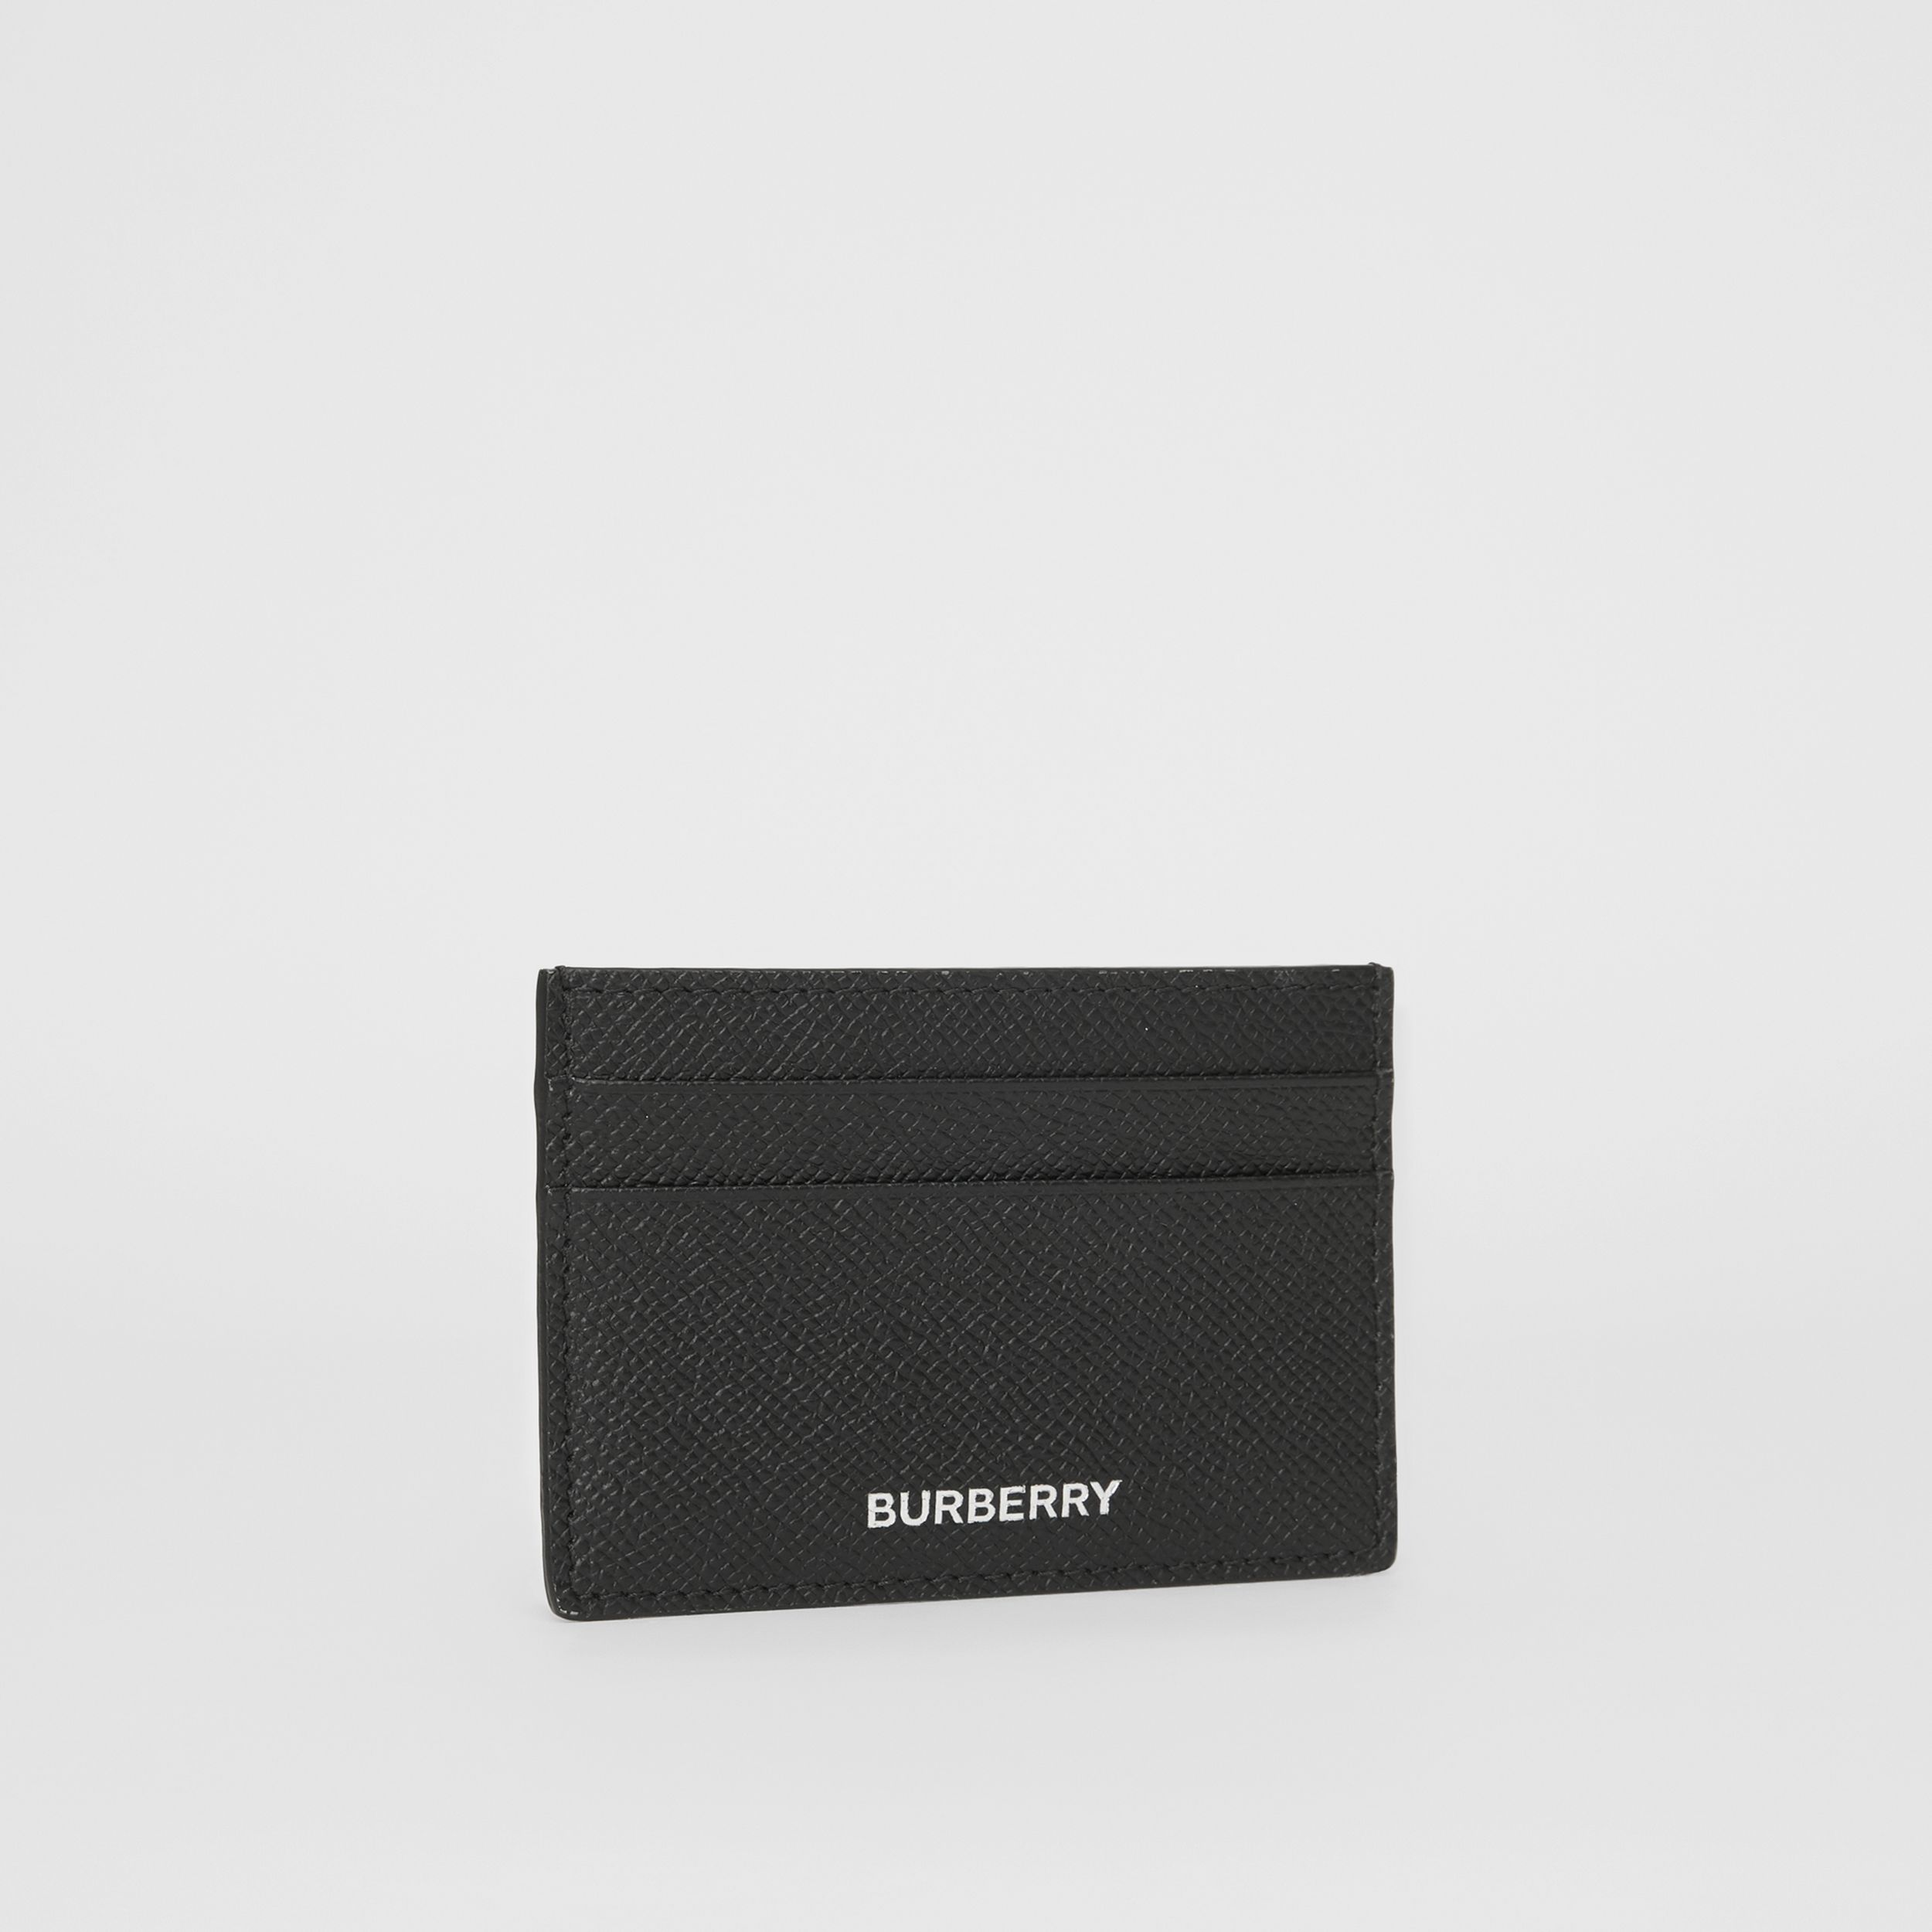 Grainy Leather Card Case in Black - Men | Burberry - 4